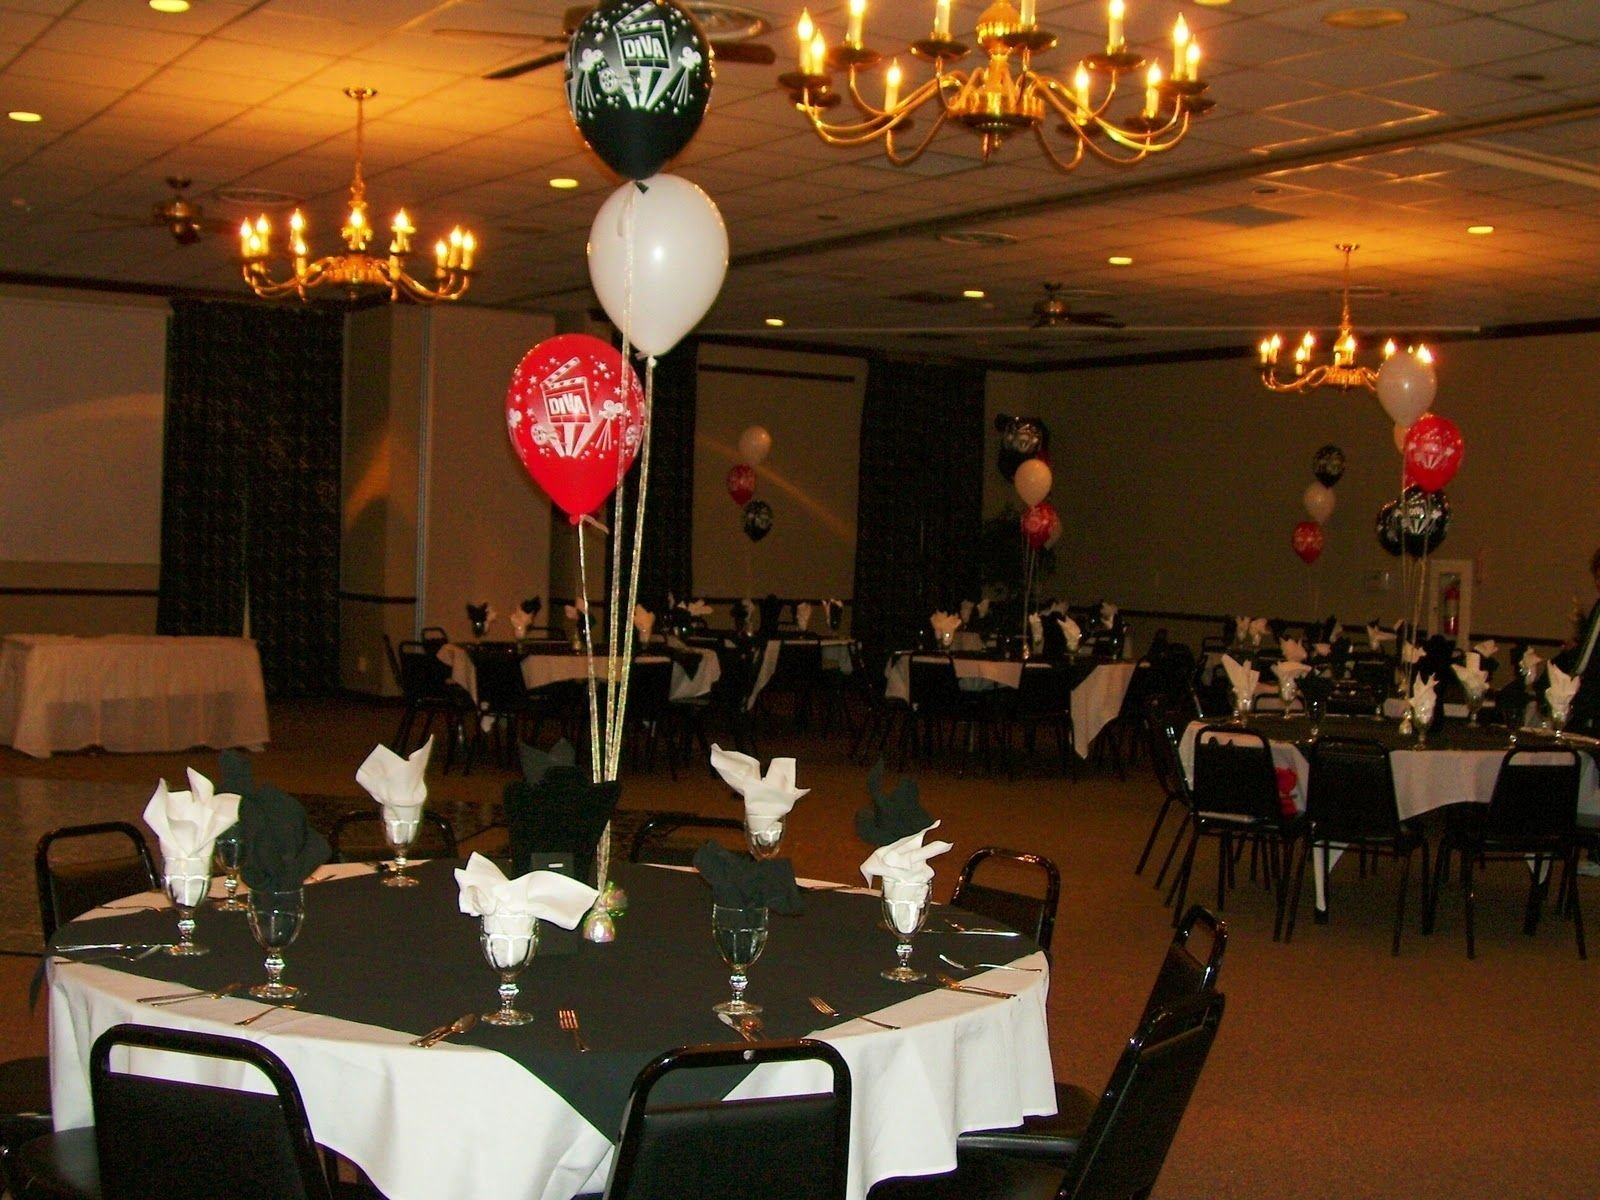 40th birthday party balloon decorations | 40th birthday parties, 40